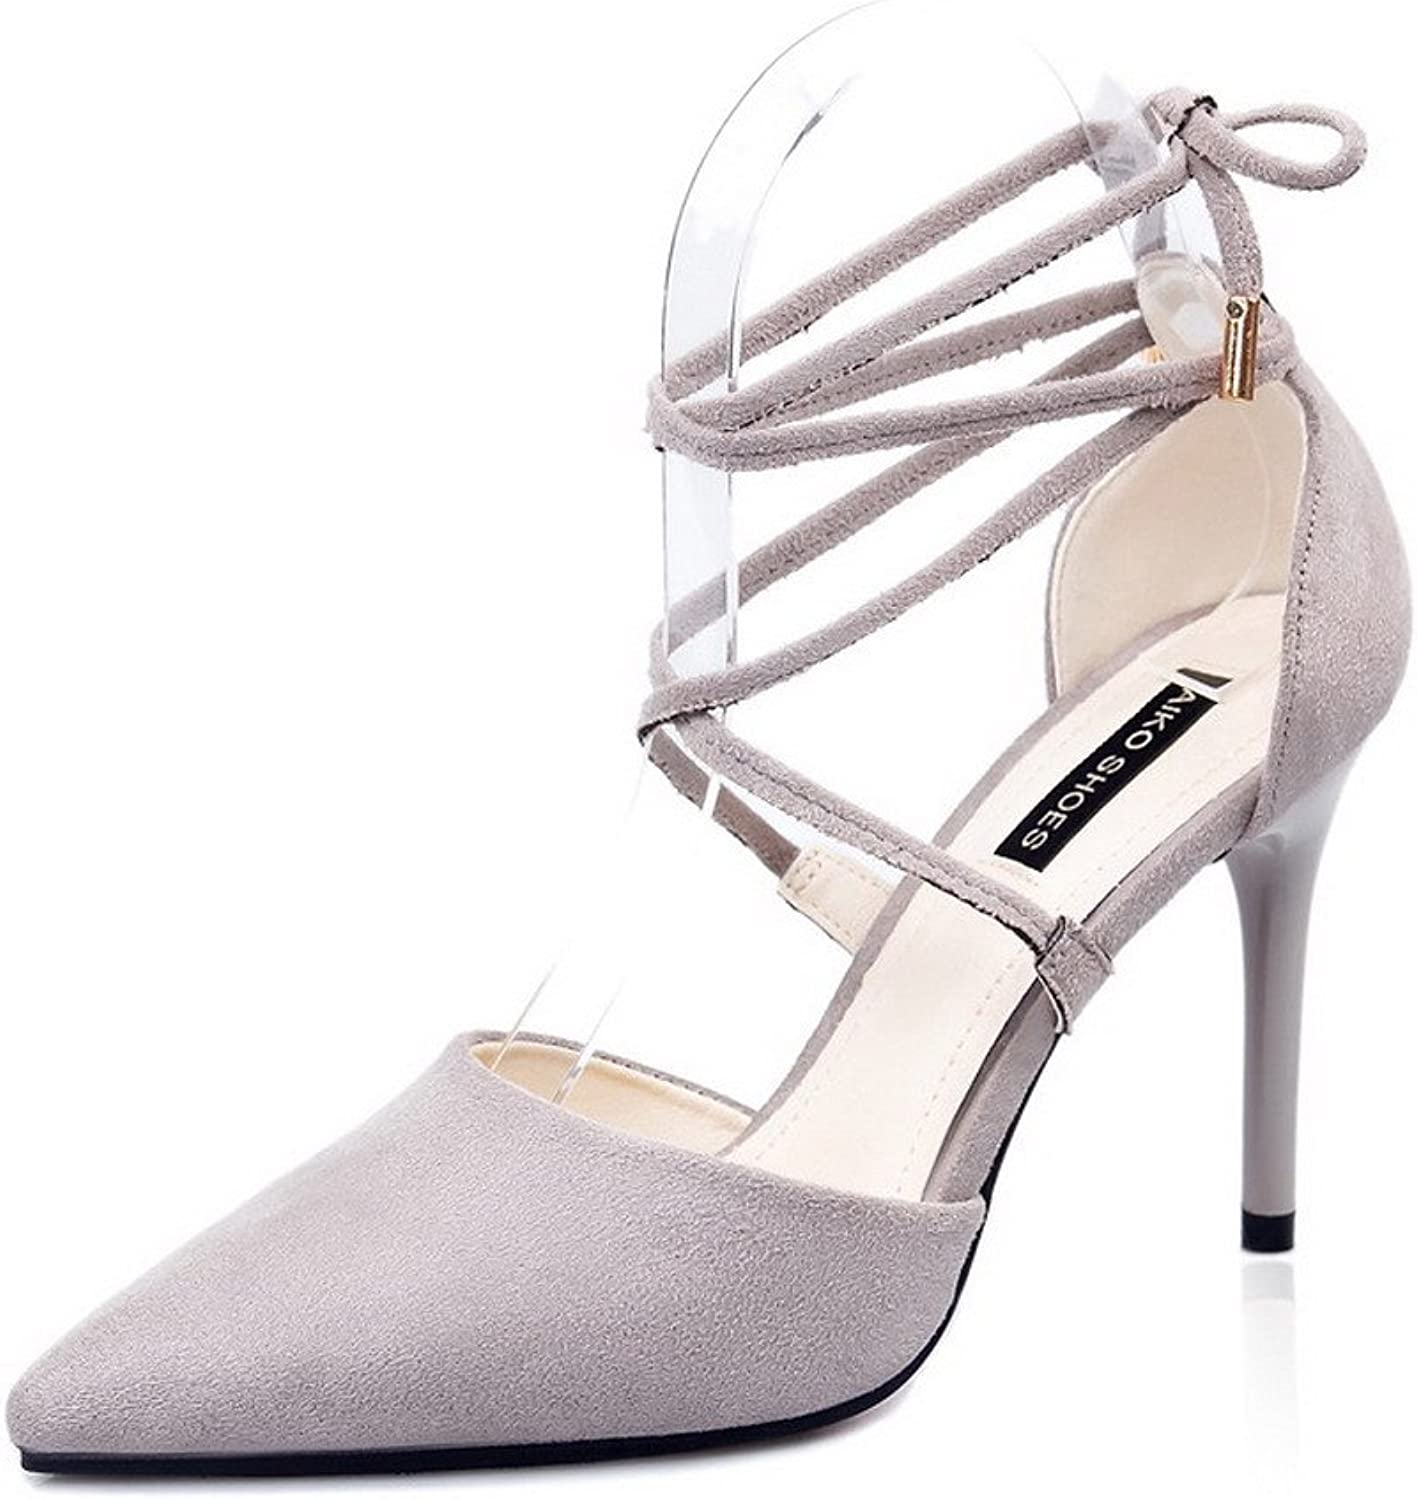 AmoonyFashion Women's Lace-up High-Heels Imitated Suede Solid Pointed-Toe Sandals